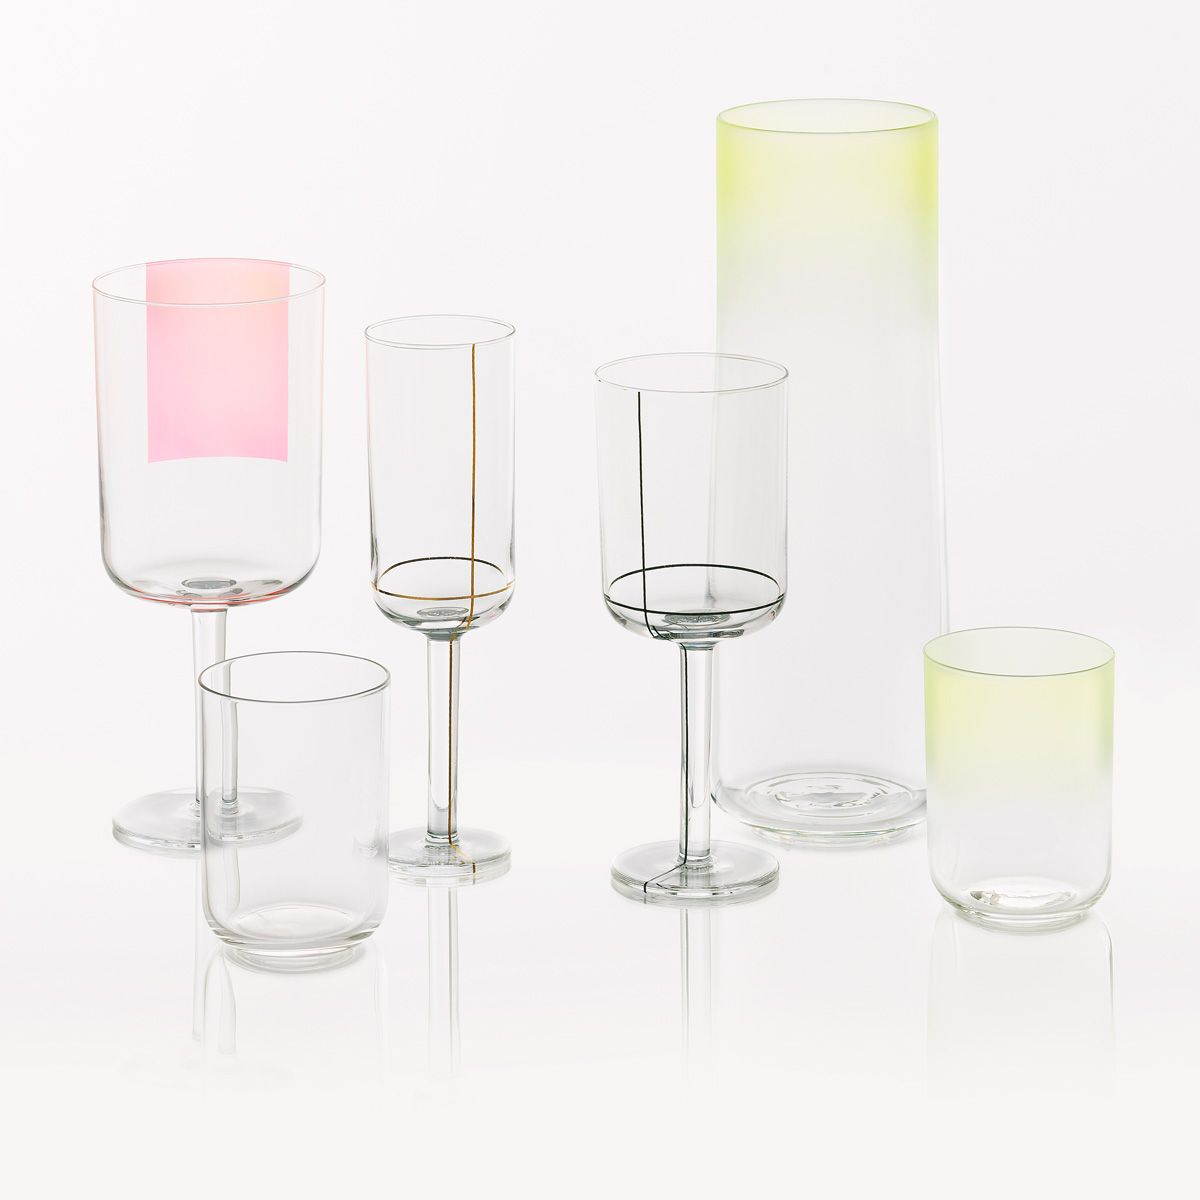 Hay Colour Glass  The Colour Glass collection is a range of minimalist glassware by Scholten & Baijings. It includes high and low water glasses, a red wine glass, a white wine glass, a champagne glass and a carafe. The glasses and carafe come in in three different designs: with yellow or blue fading from the top, or a golden dot at the bottom of the vessels. The red wine glass comes with a pink square on one side, the white wine glass has black grid lines and the c